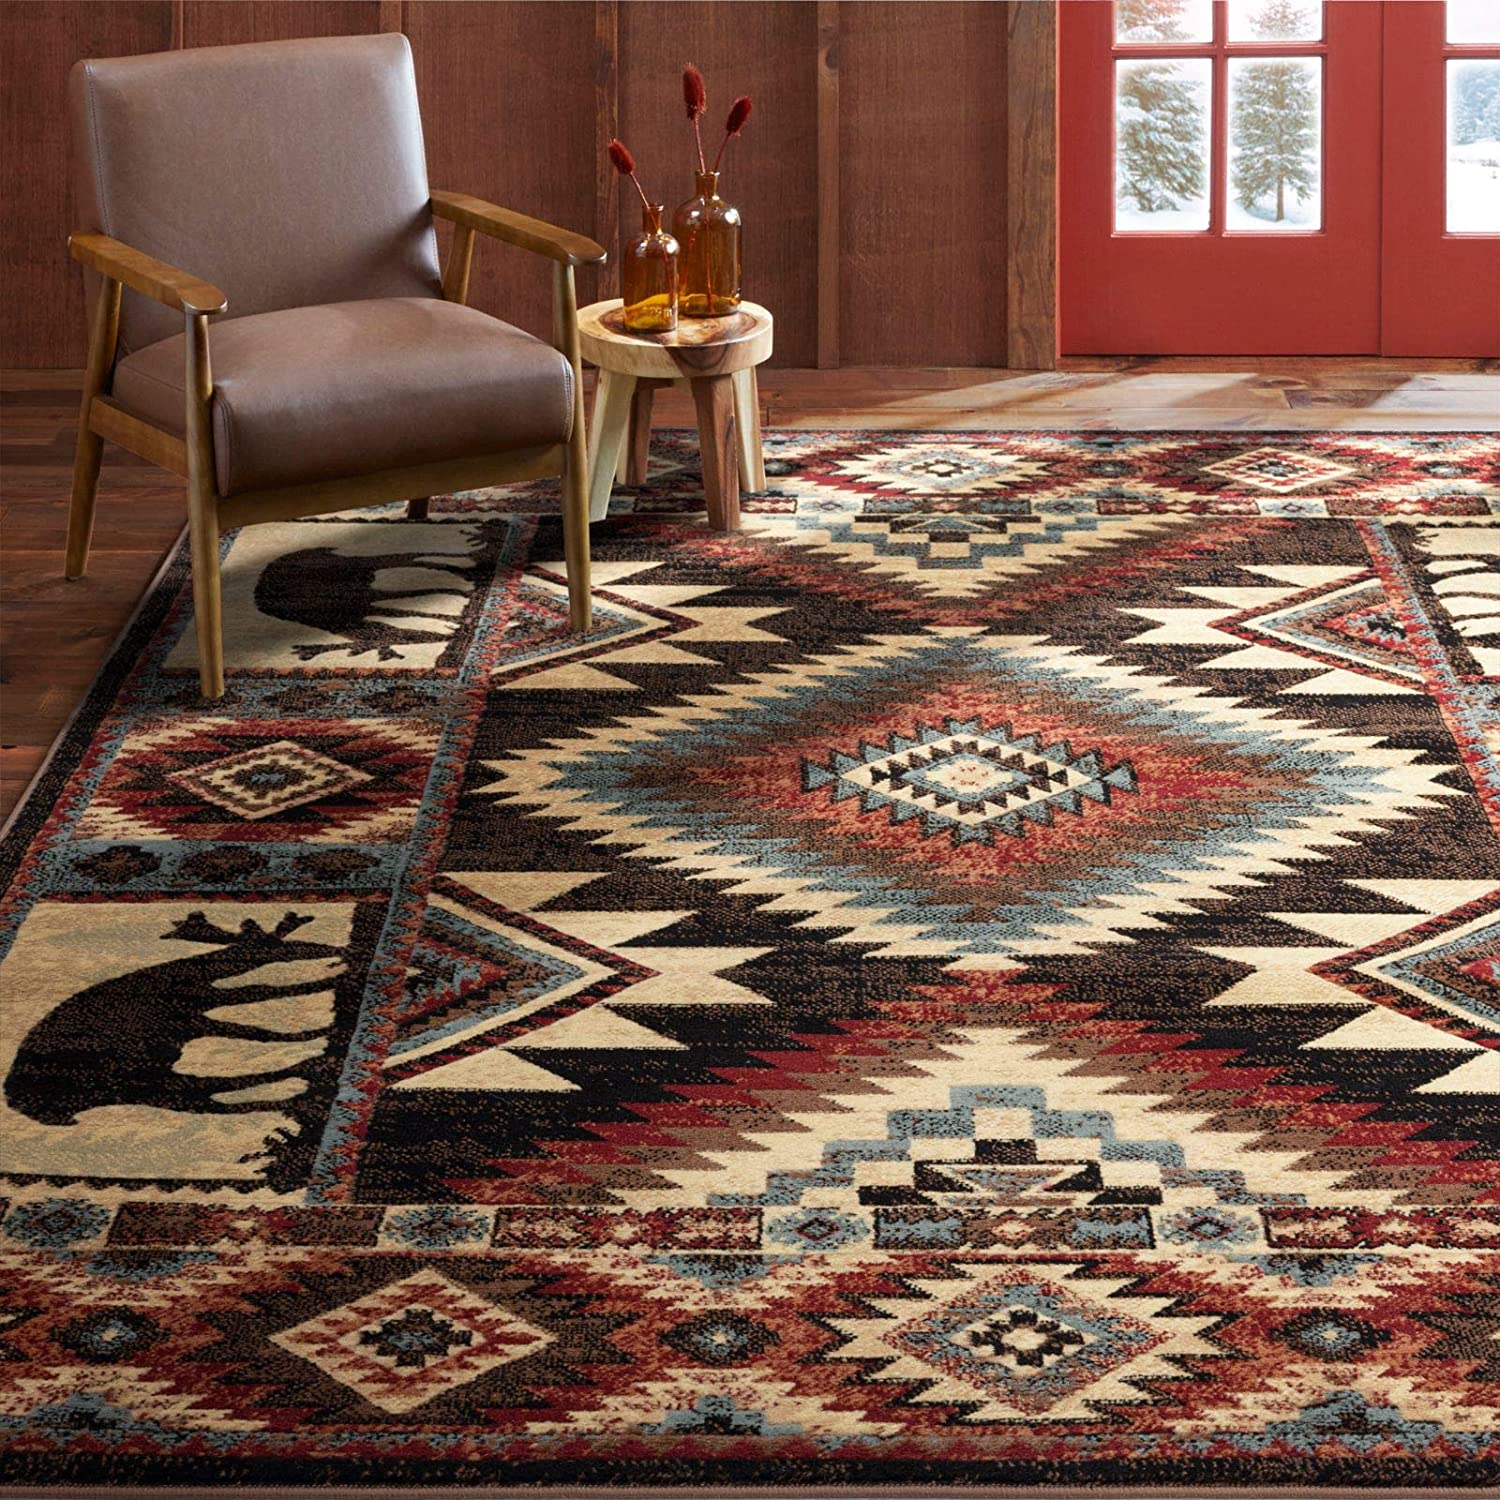 Home Dynamix Buffalo Southwest Rustic Area Rug, Brown/Red, 5'2